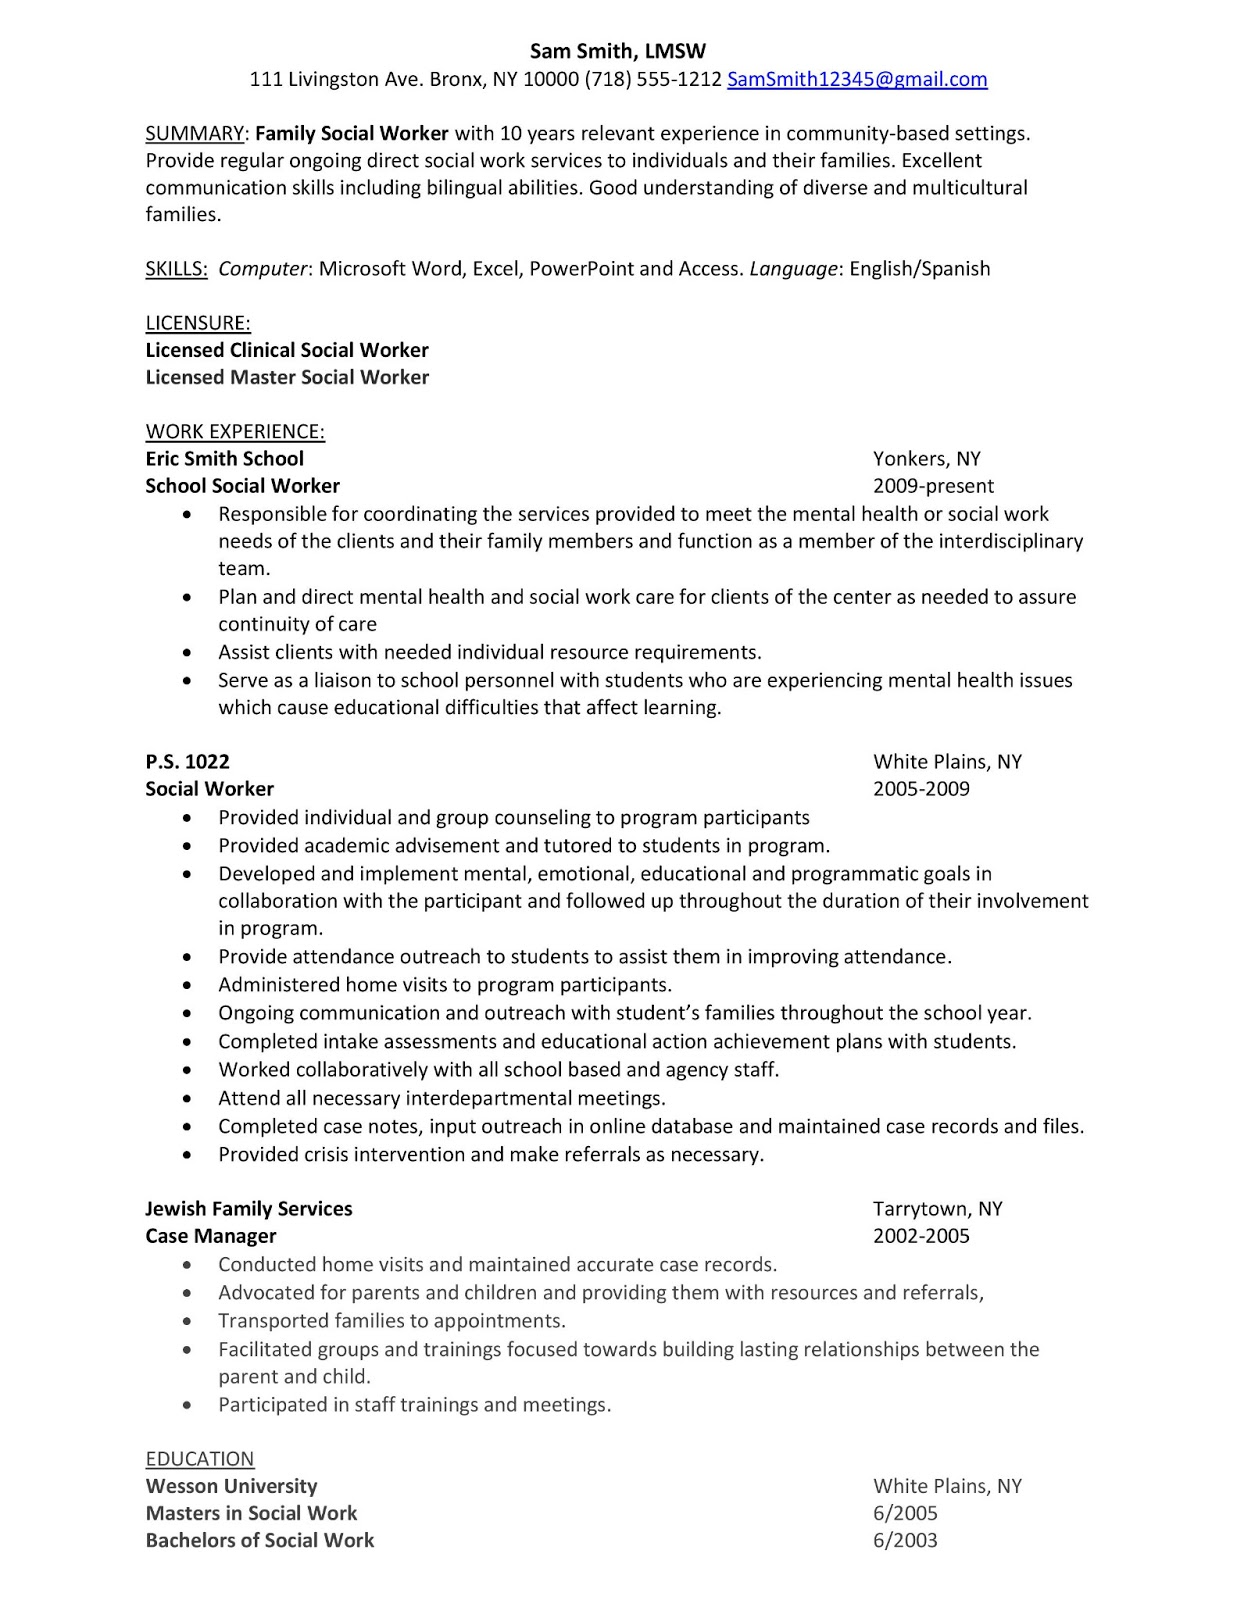 Resumes For Social Workers Lcjs Sample Resume Family Social Worker